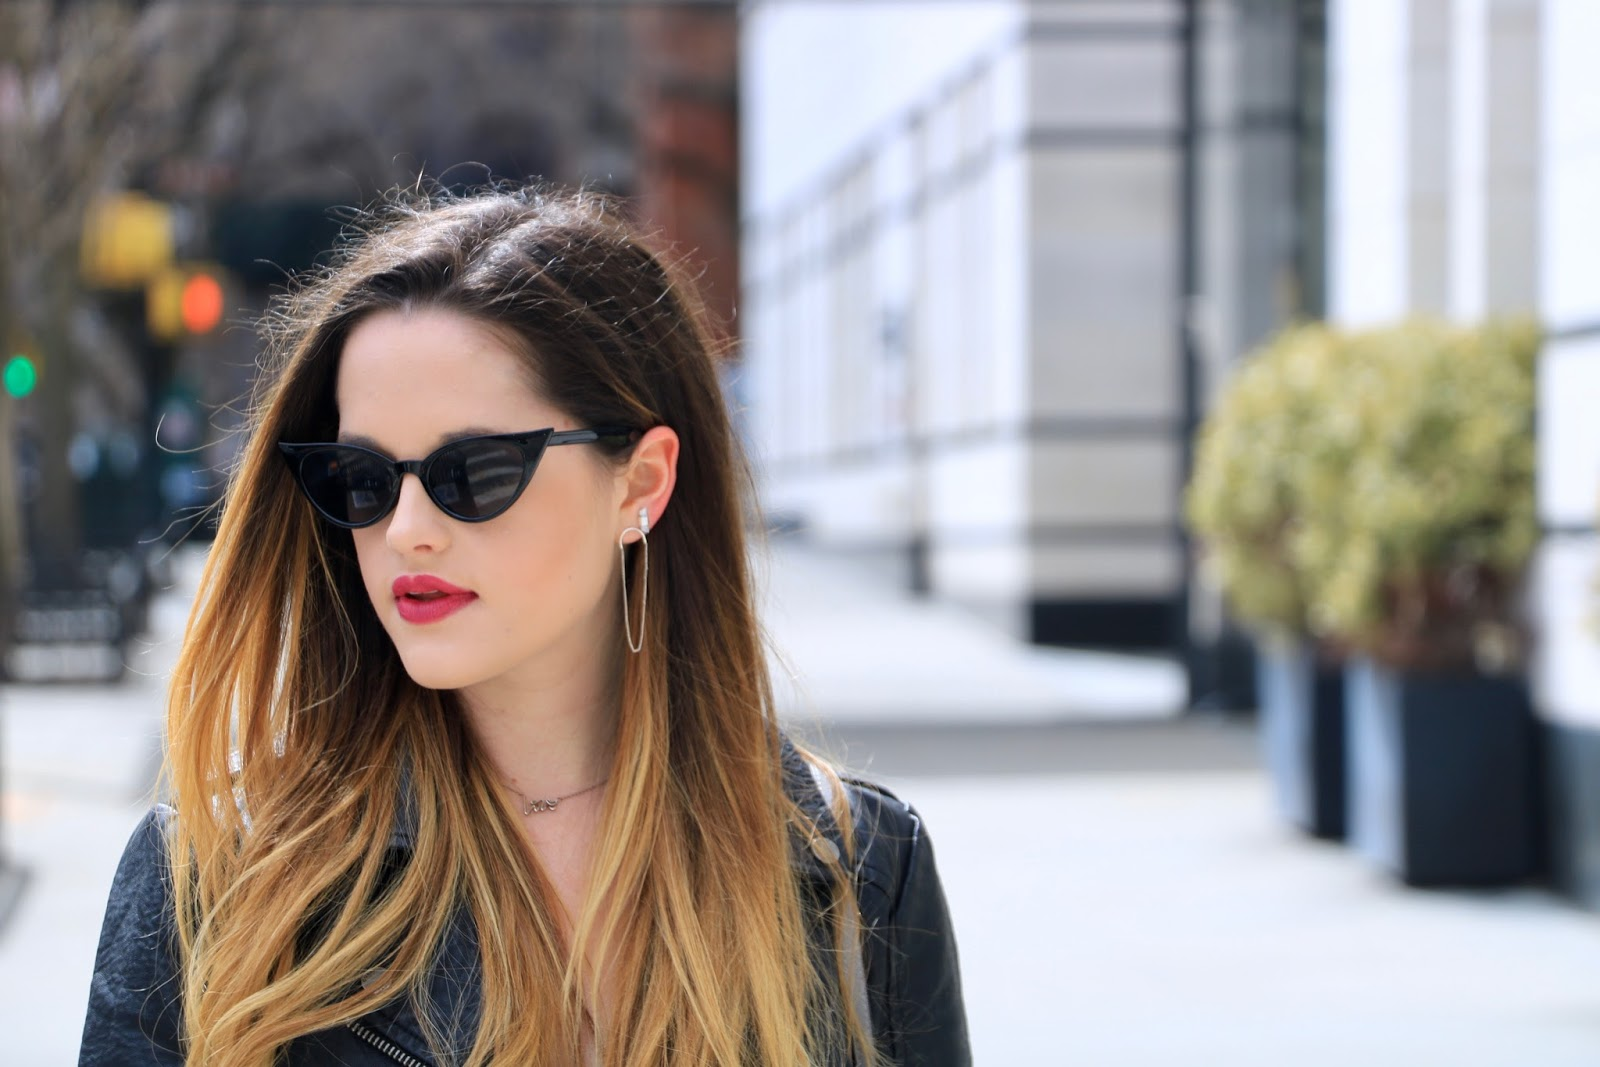 Nyc fashion blogger Kathleen Harper wearing Urban Outfitters cat eye sunglasses